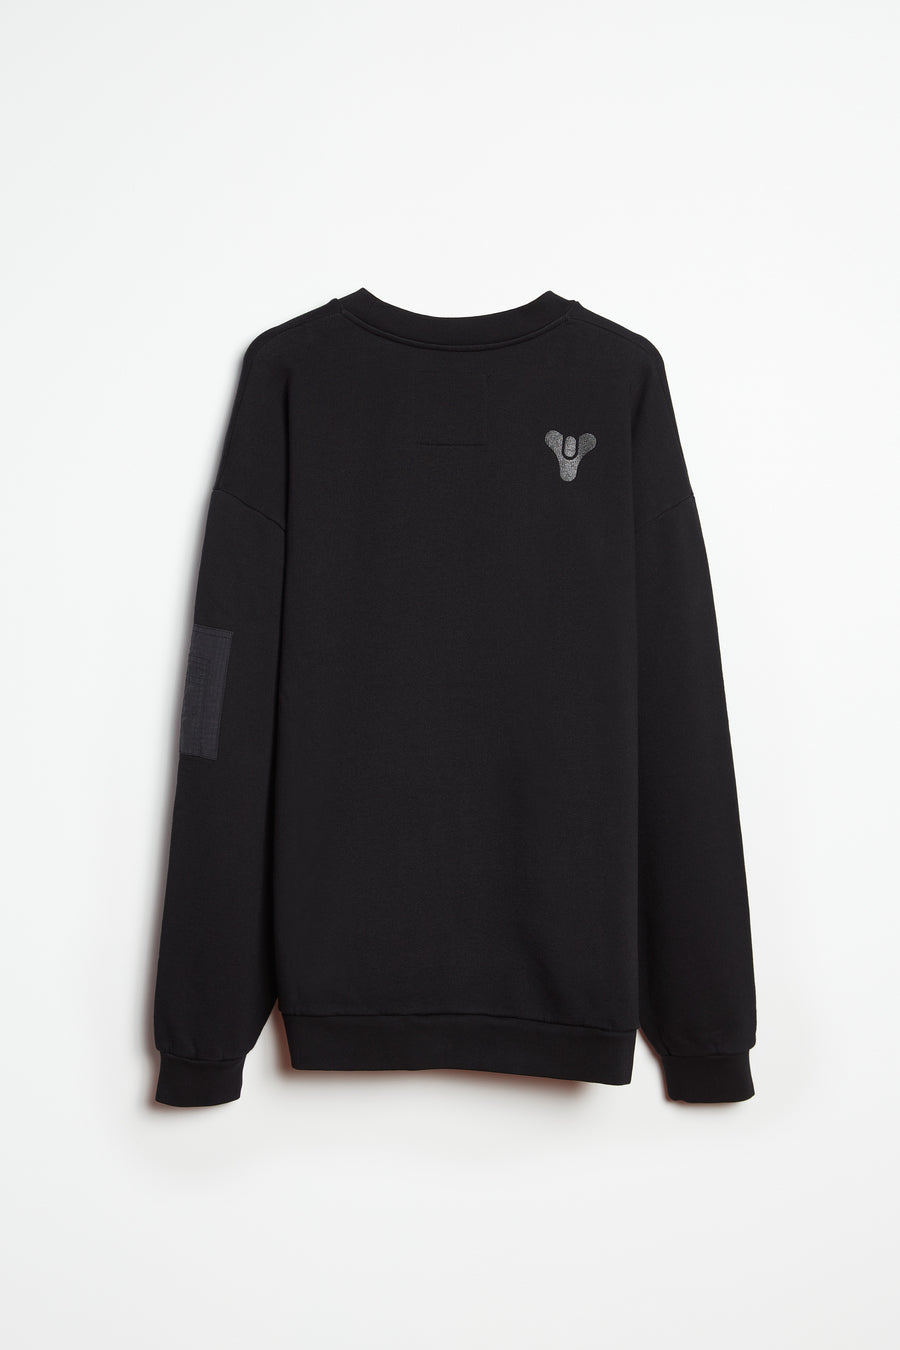 Destiny Europa Oversize Tech Sweater